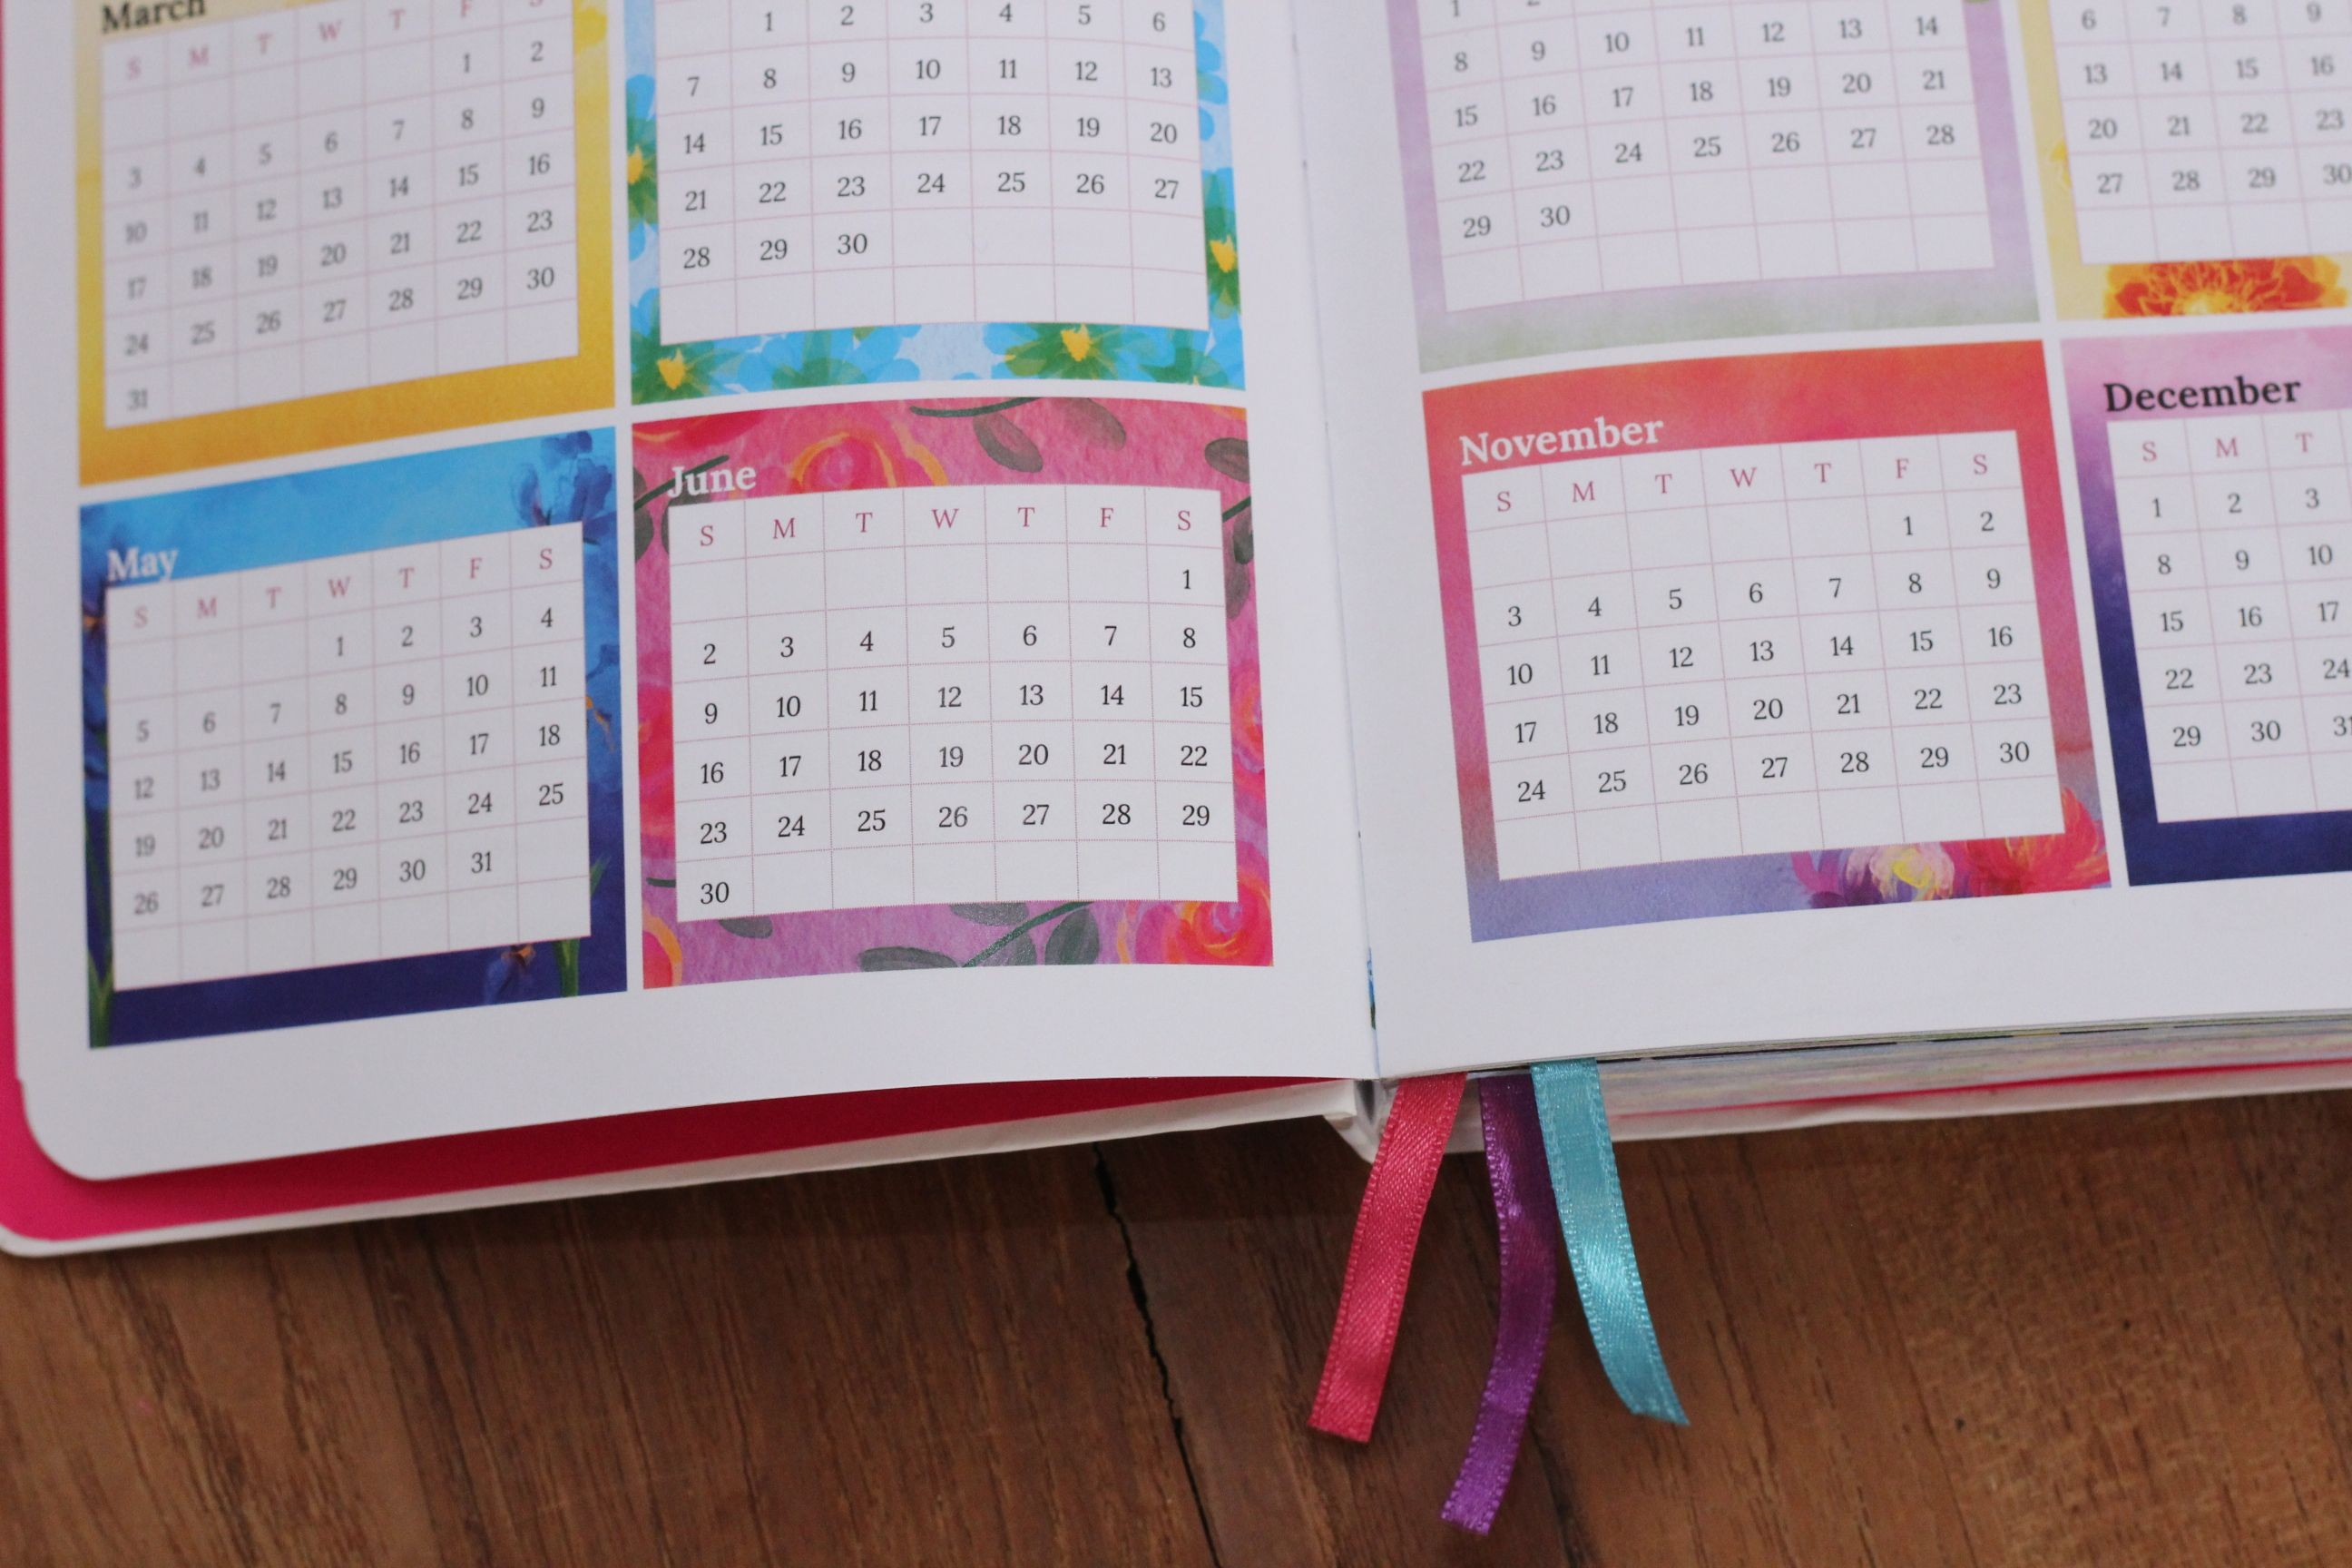 Calendar Planners 2019 Más Populares the 2019 Awesome Marketing Planner System